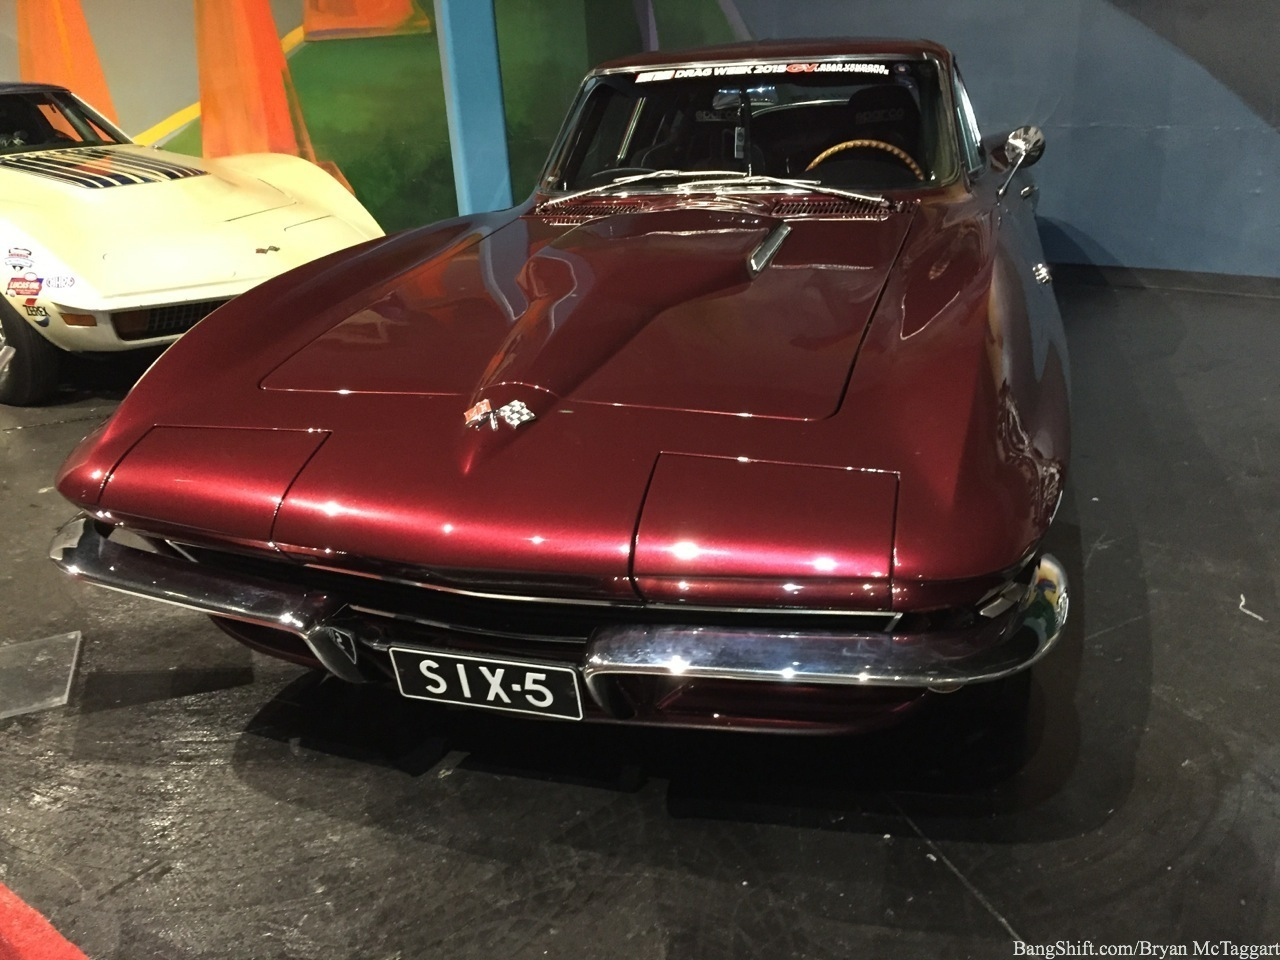 Take A Look At What's New At The National Corvette Museum: From New Cars On Display To New Exhibits!